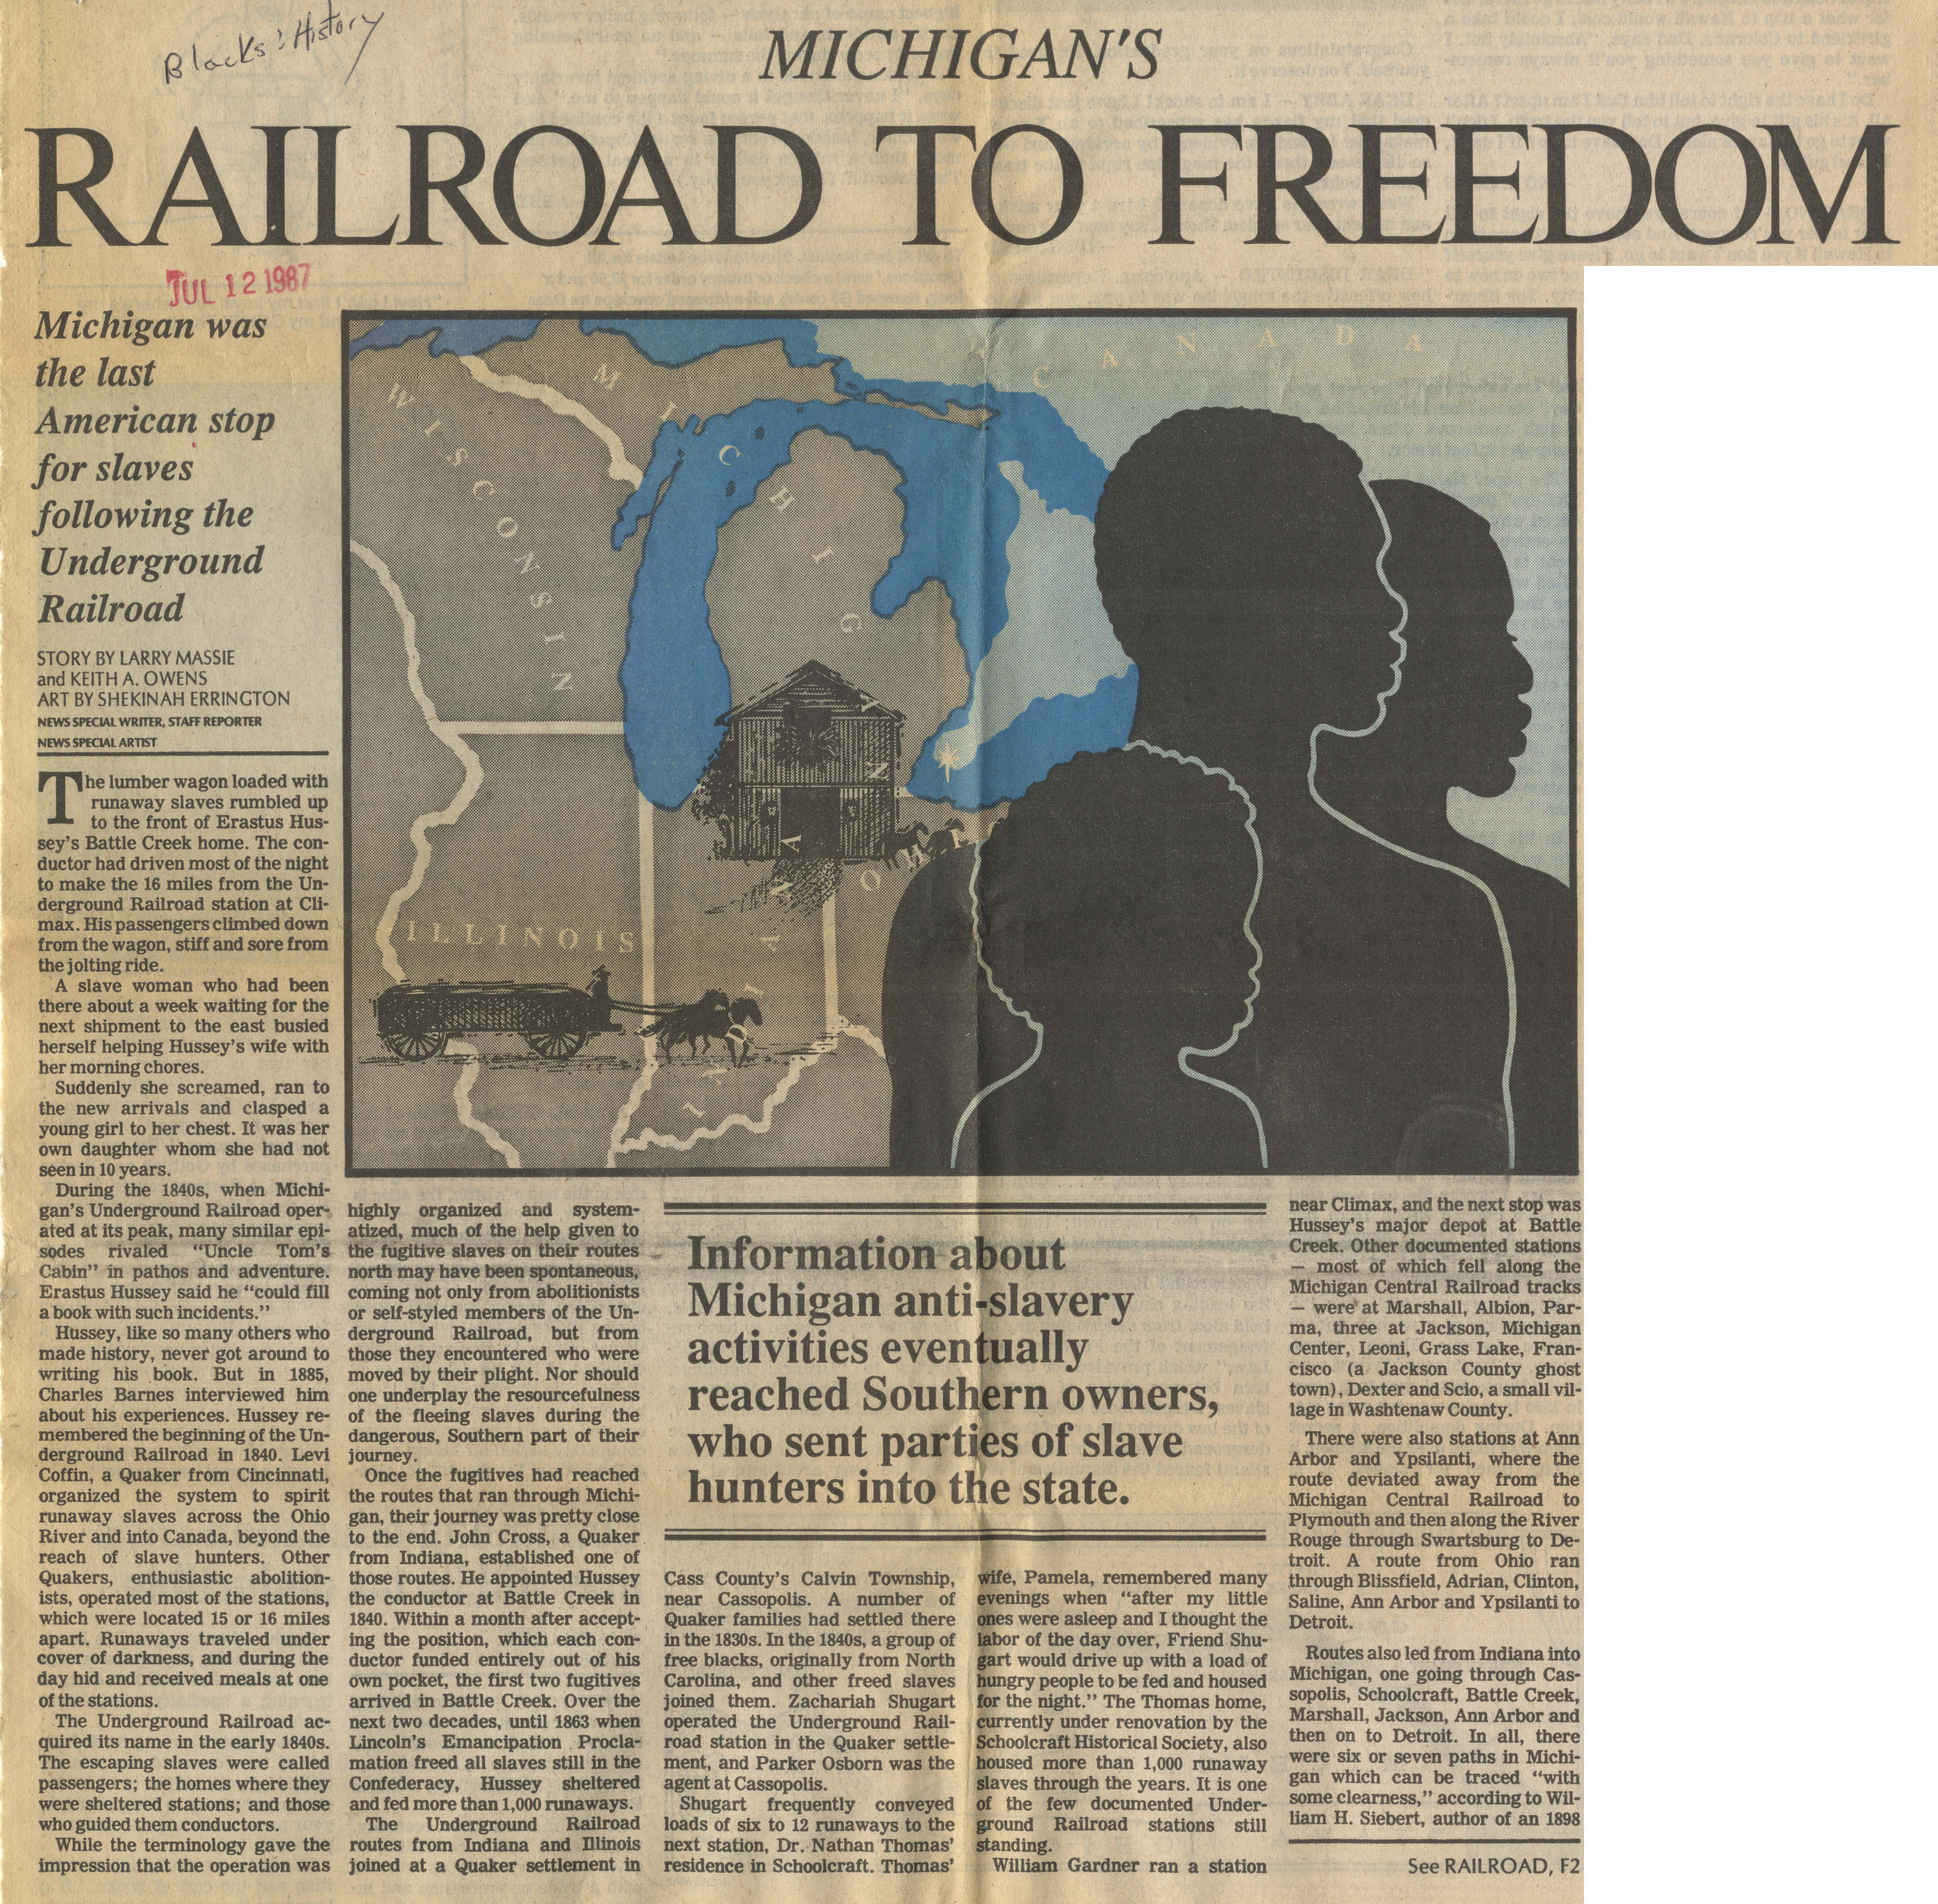 Michigan's Railroad To Freedom image